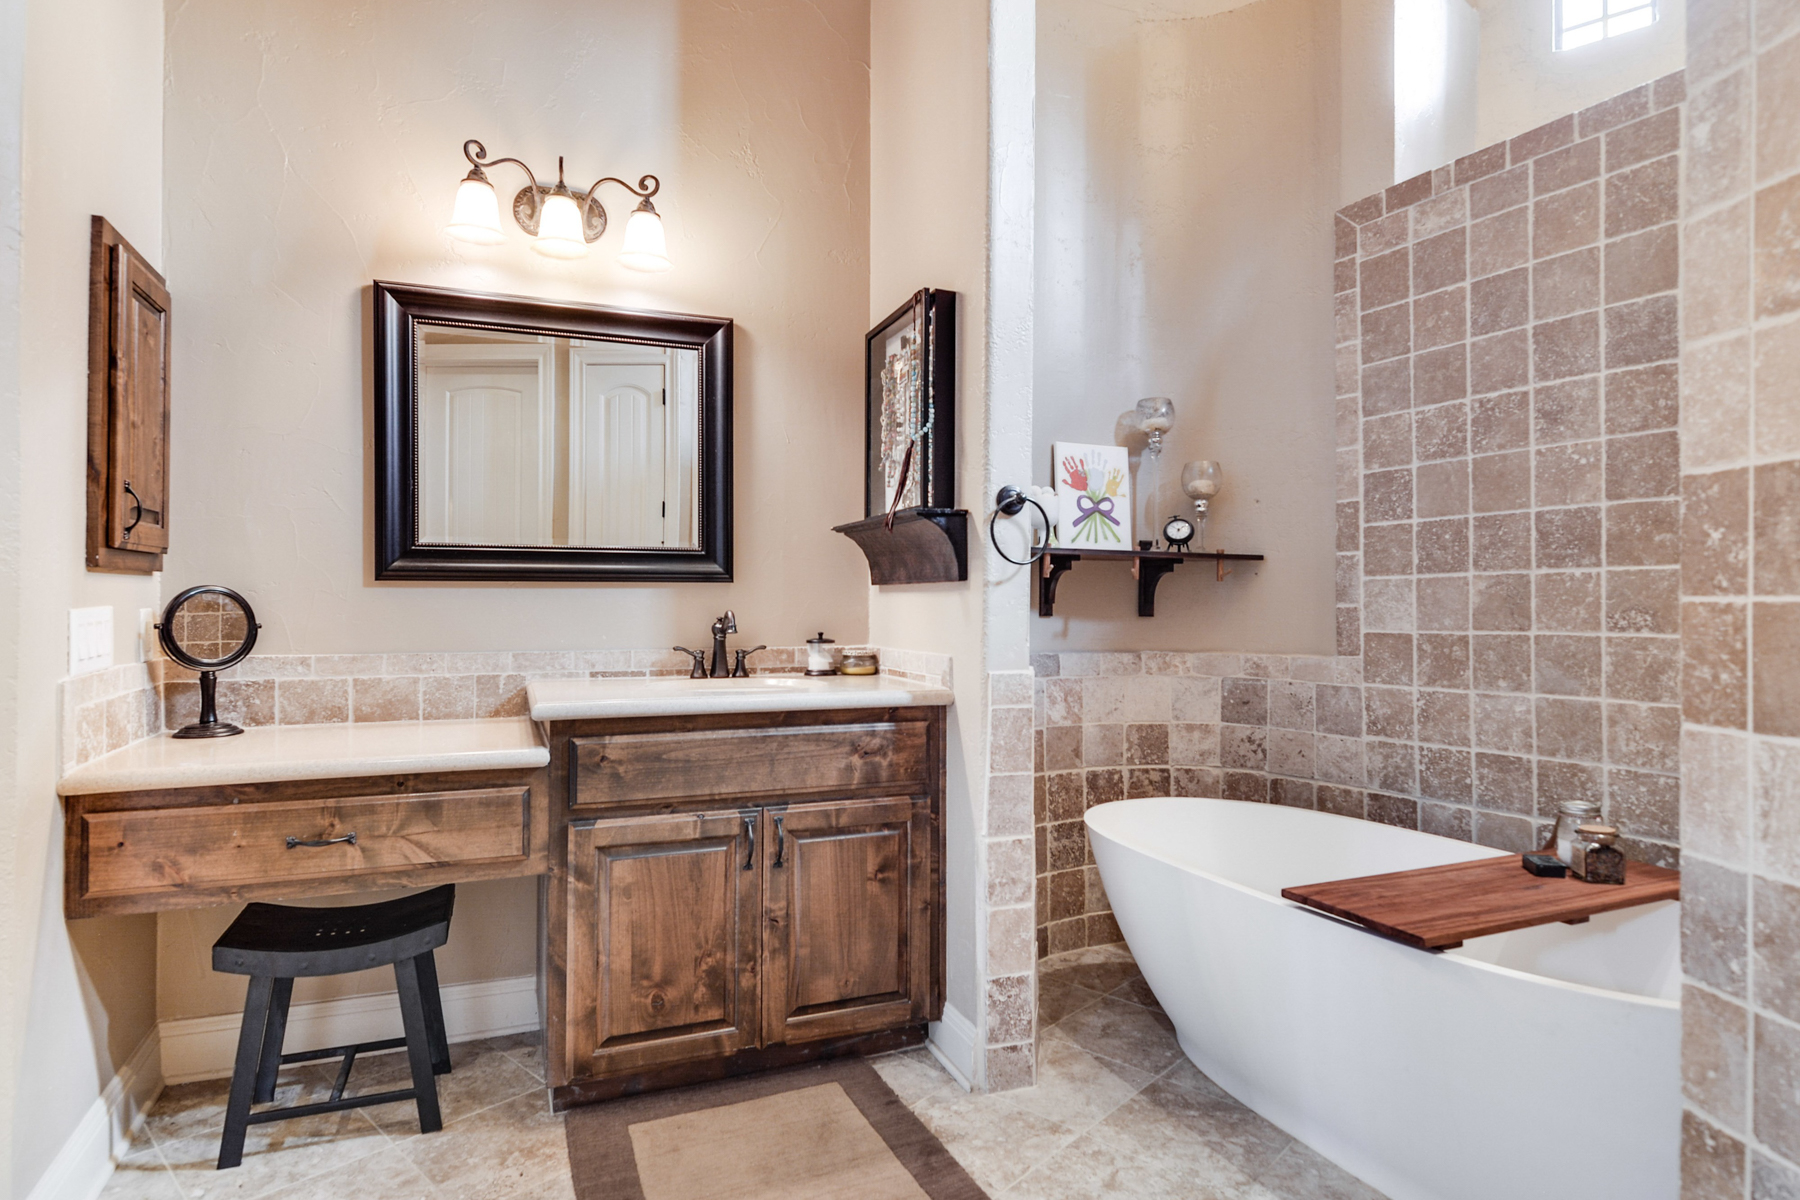 Additional photo for property listing at Fabulous Mediterranean Home in Menger Springs 108 Cabin Springs Boerne, Texas 78006 Estados Unidos